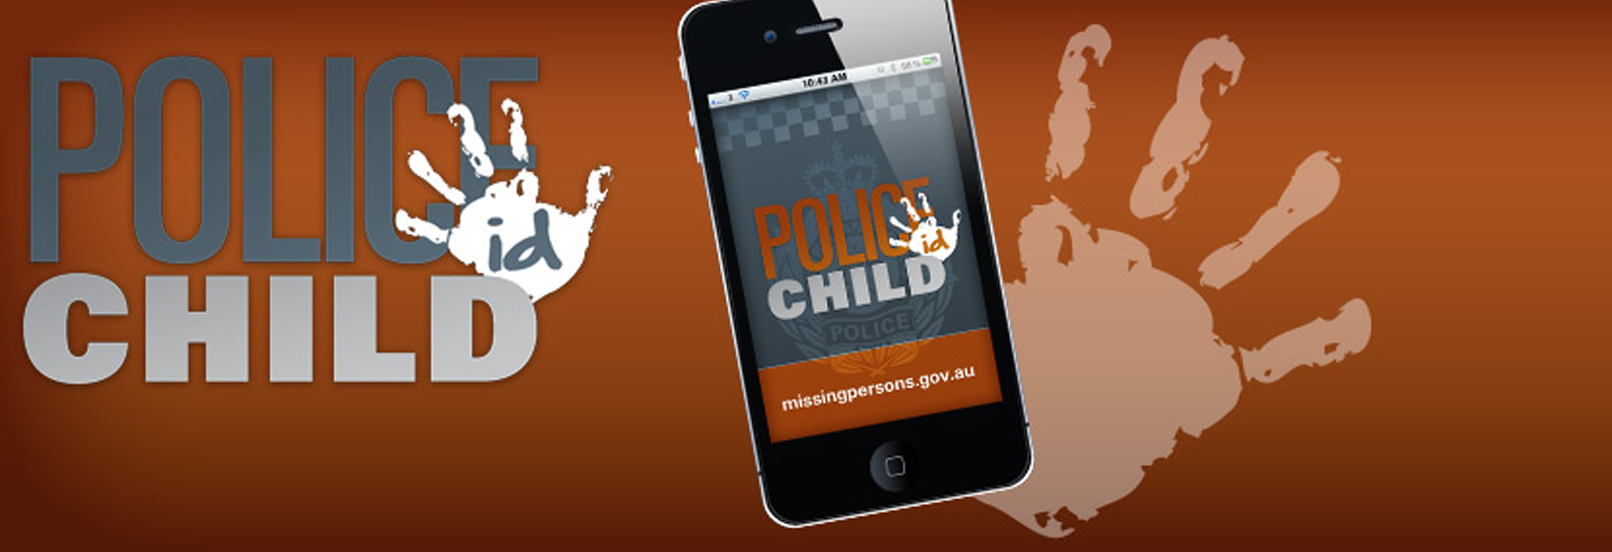 Australian Police Child ID mobile application banner